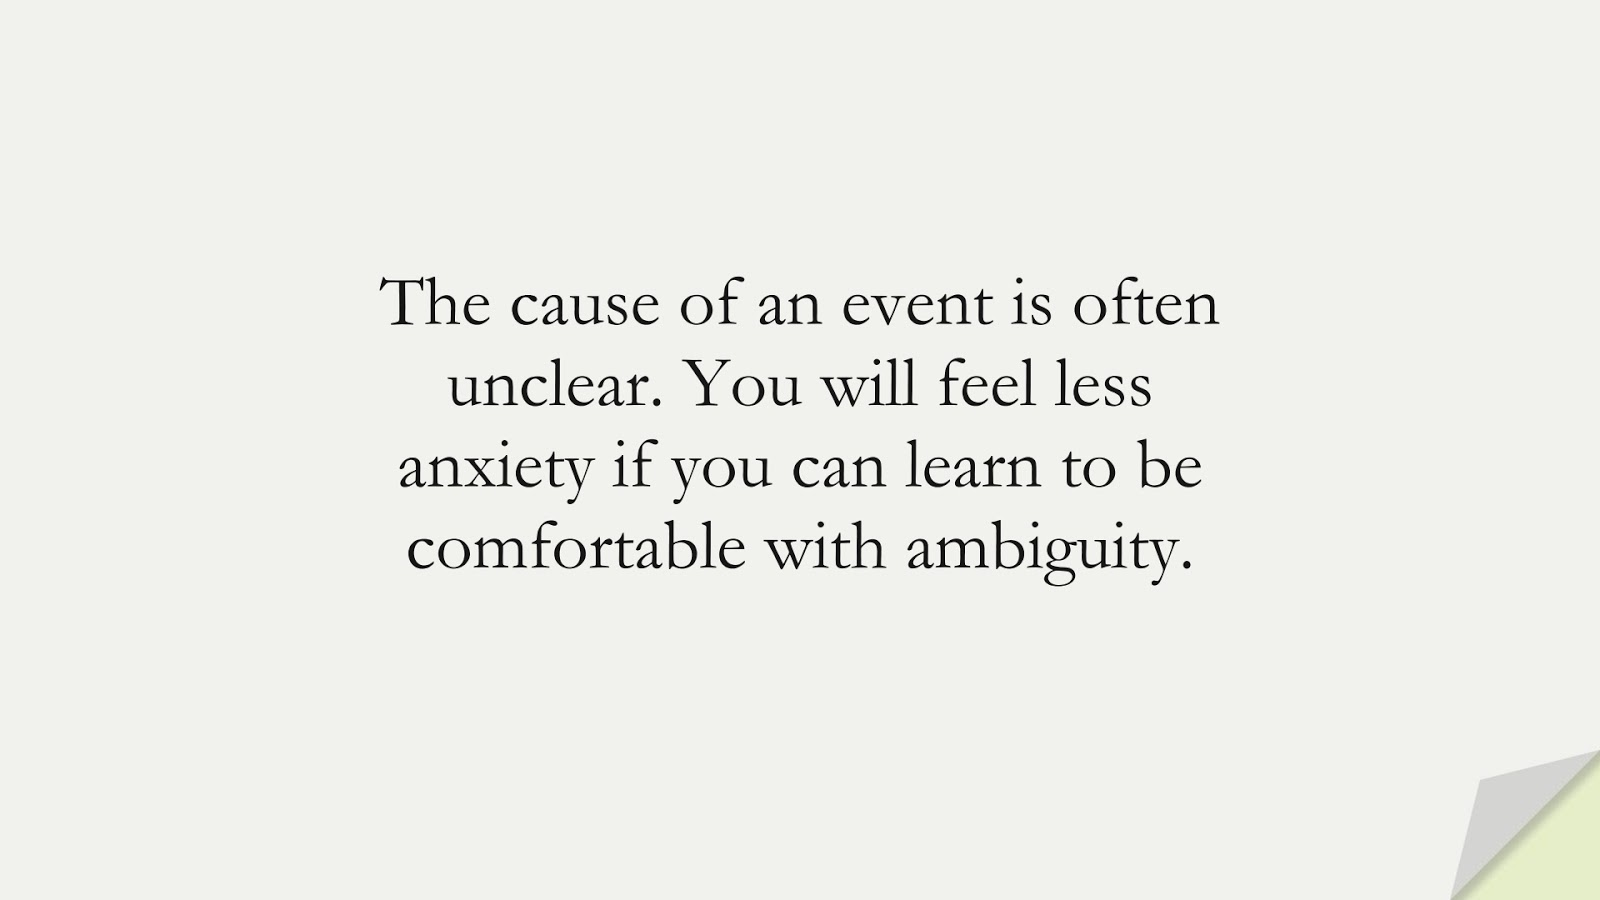 The cause of an event is often unclear. You will feel less anxiety if you can learn to be comfortable with ambiguity.FALSE